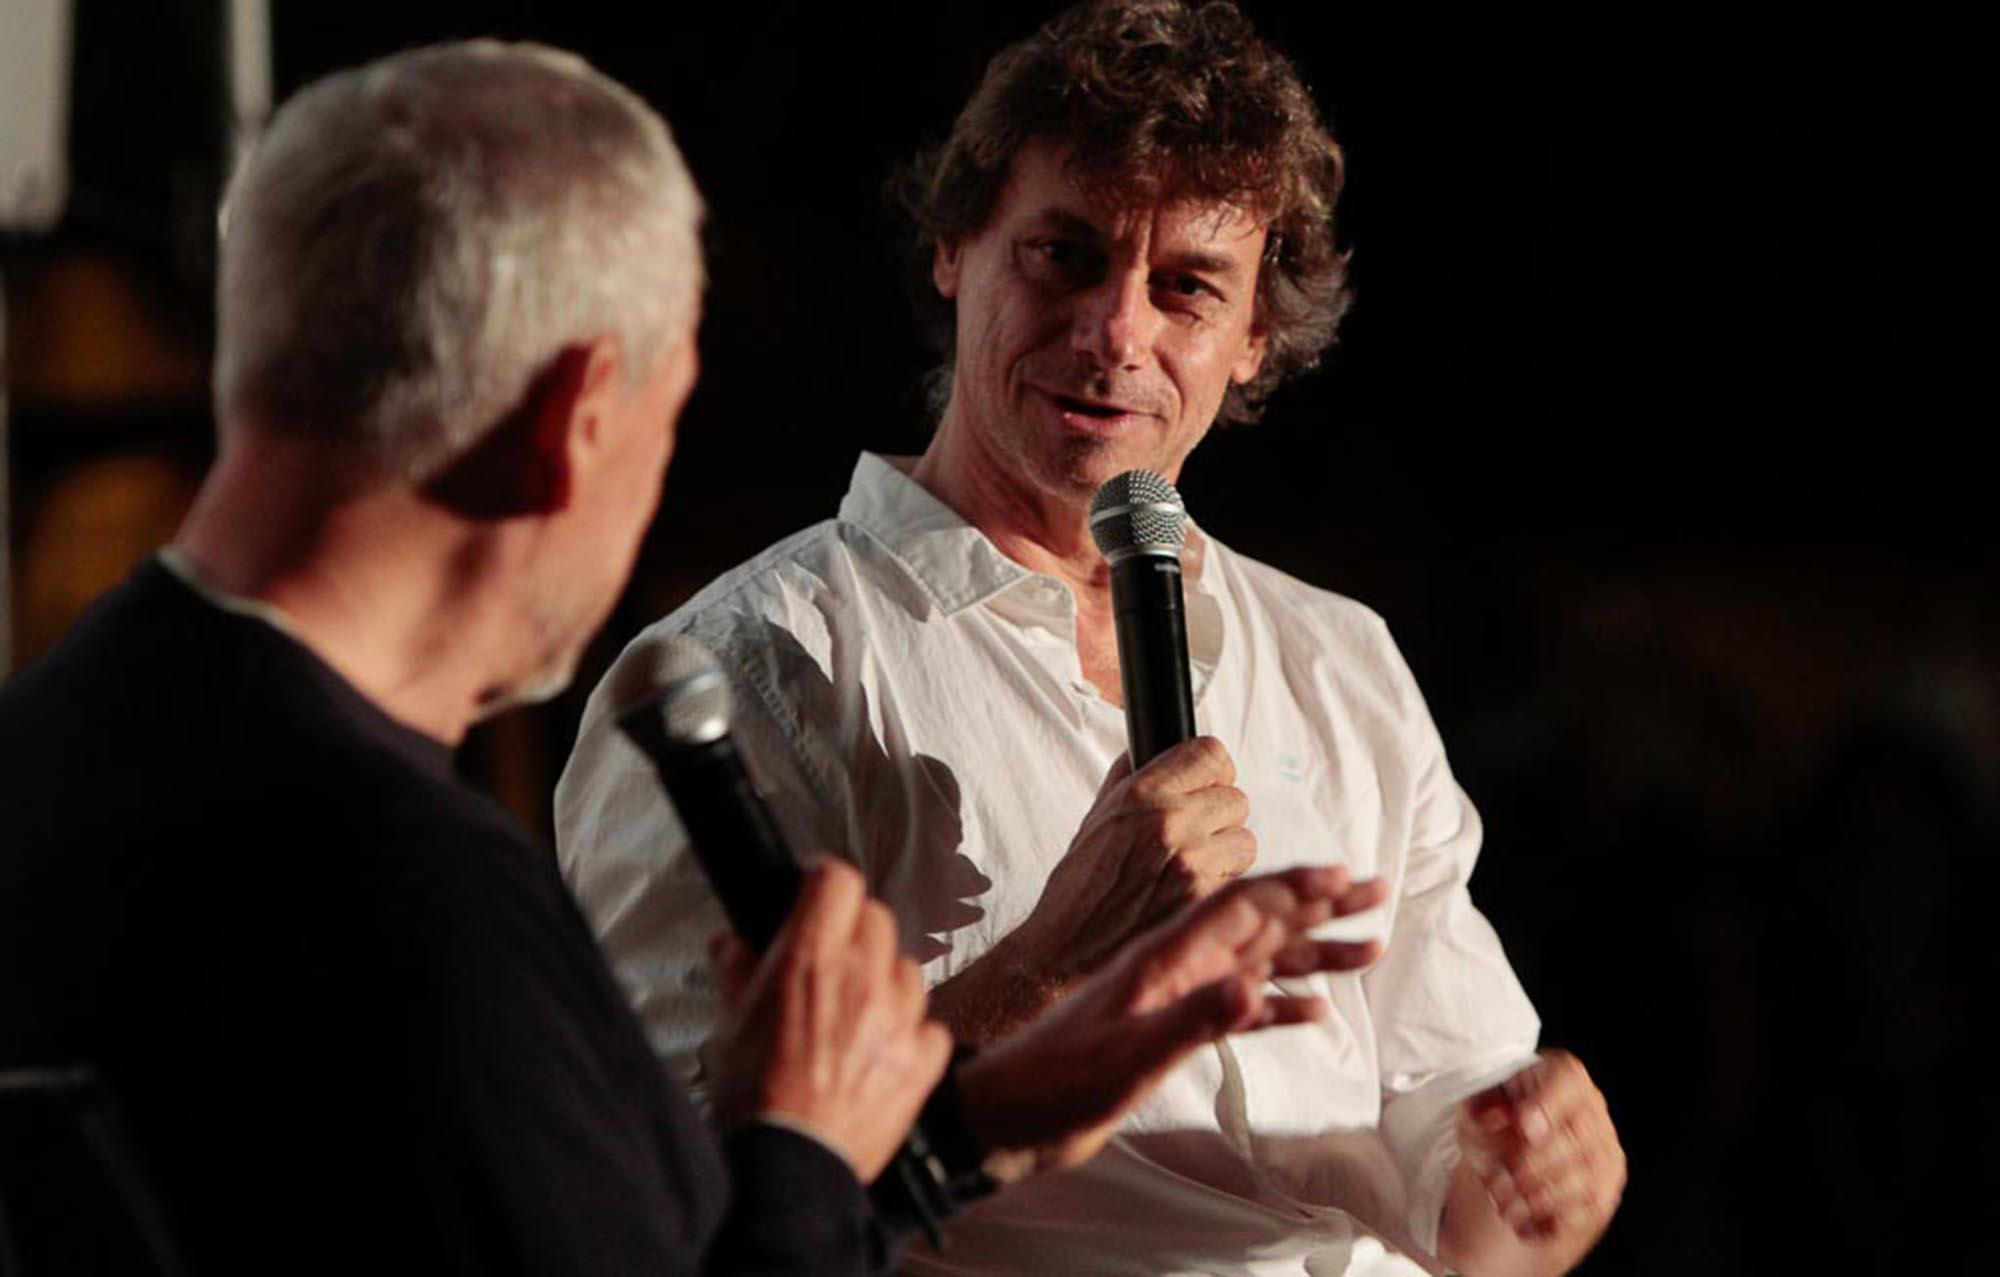 Alberto Angela interviewed by Piero Pruneti, the director of Archeologia Viva, on the stage of the Aquileia Film Festival. – © Massimo Goina